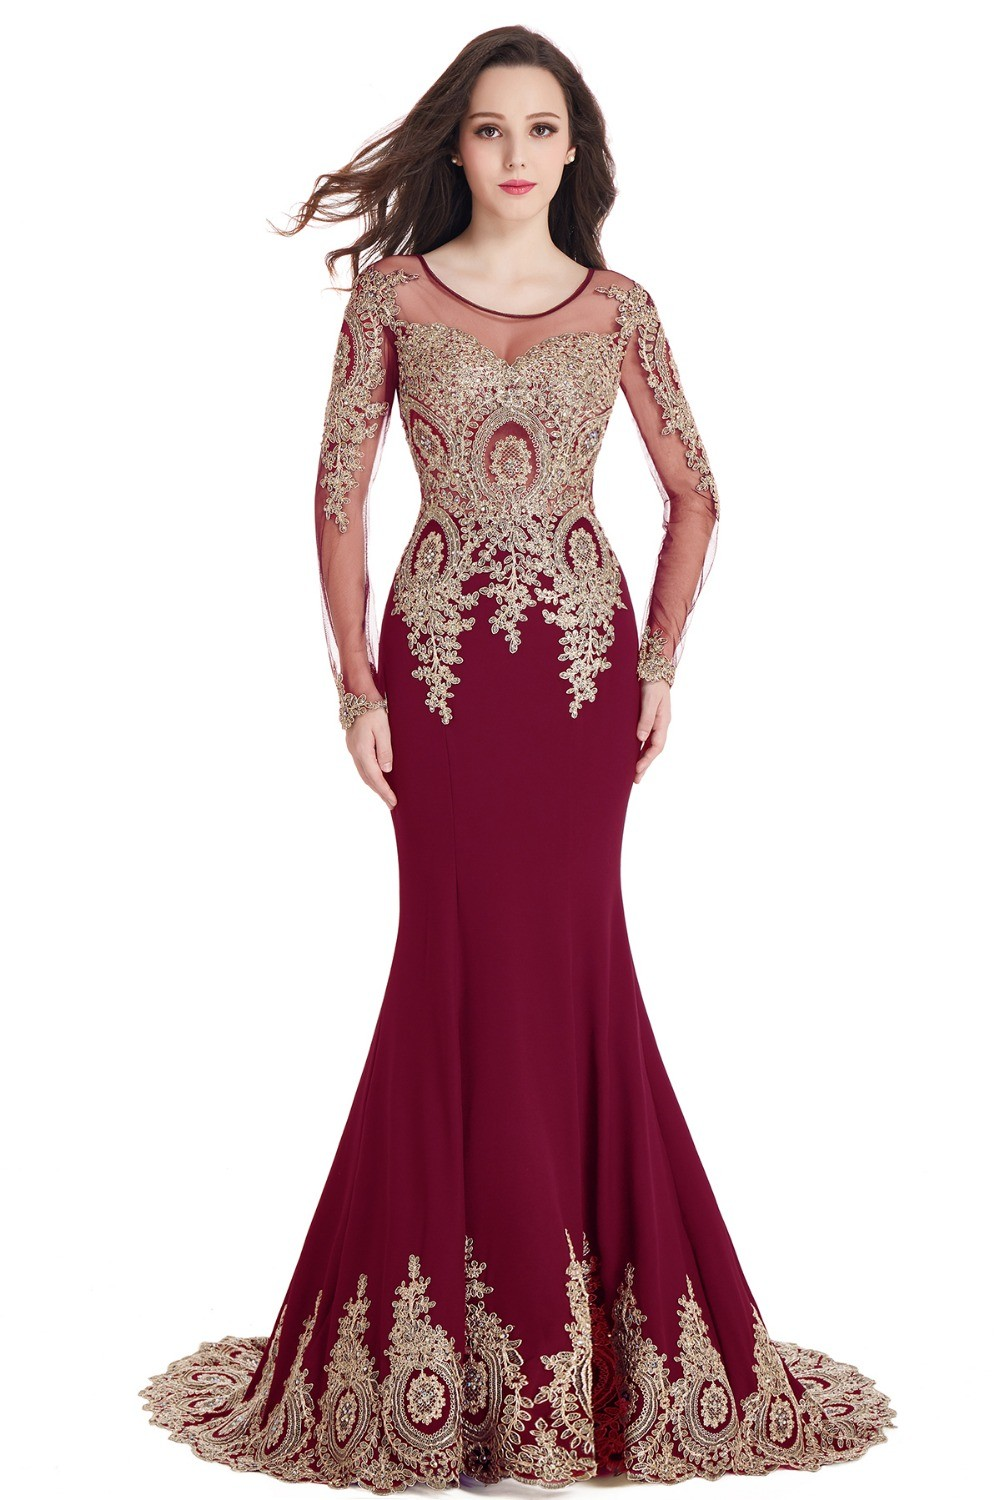 Royal-Blue-Mermaid-Long-Formal-Evening-Dresses-2017-Long-Sleeve-Lace-Burgundy-Prom-Party-Gowns-Kaftan (4)